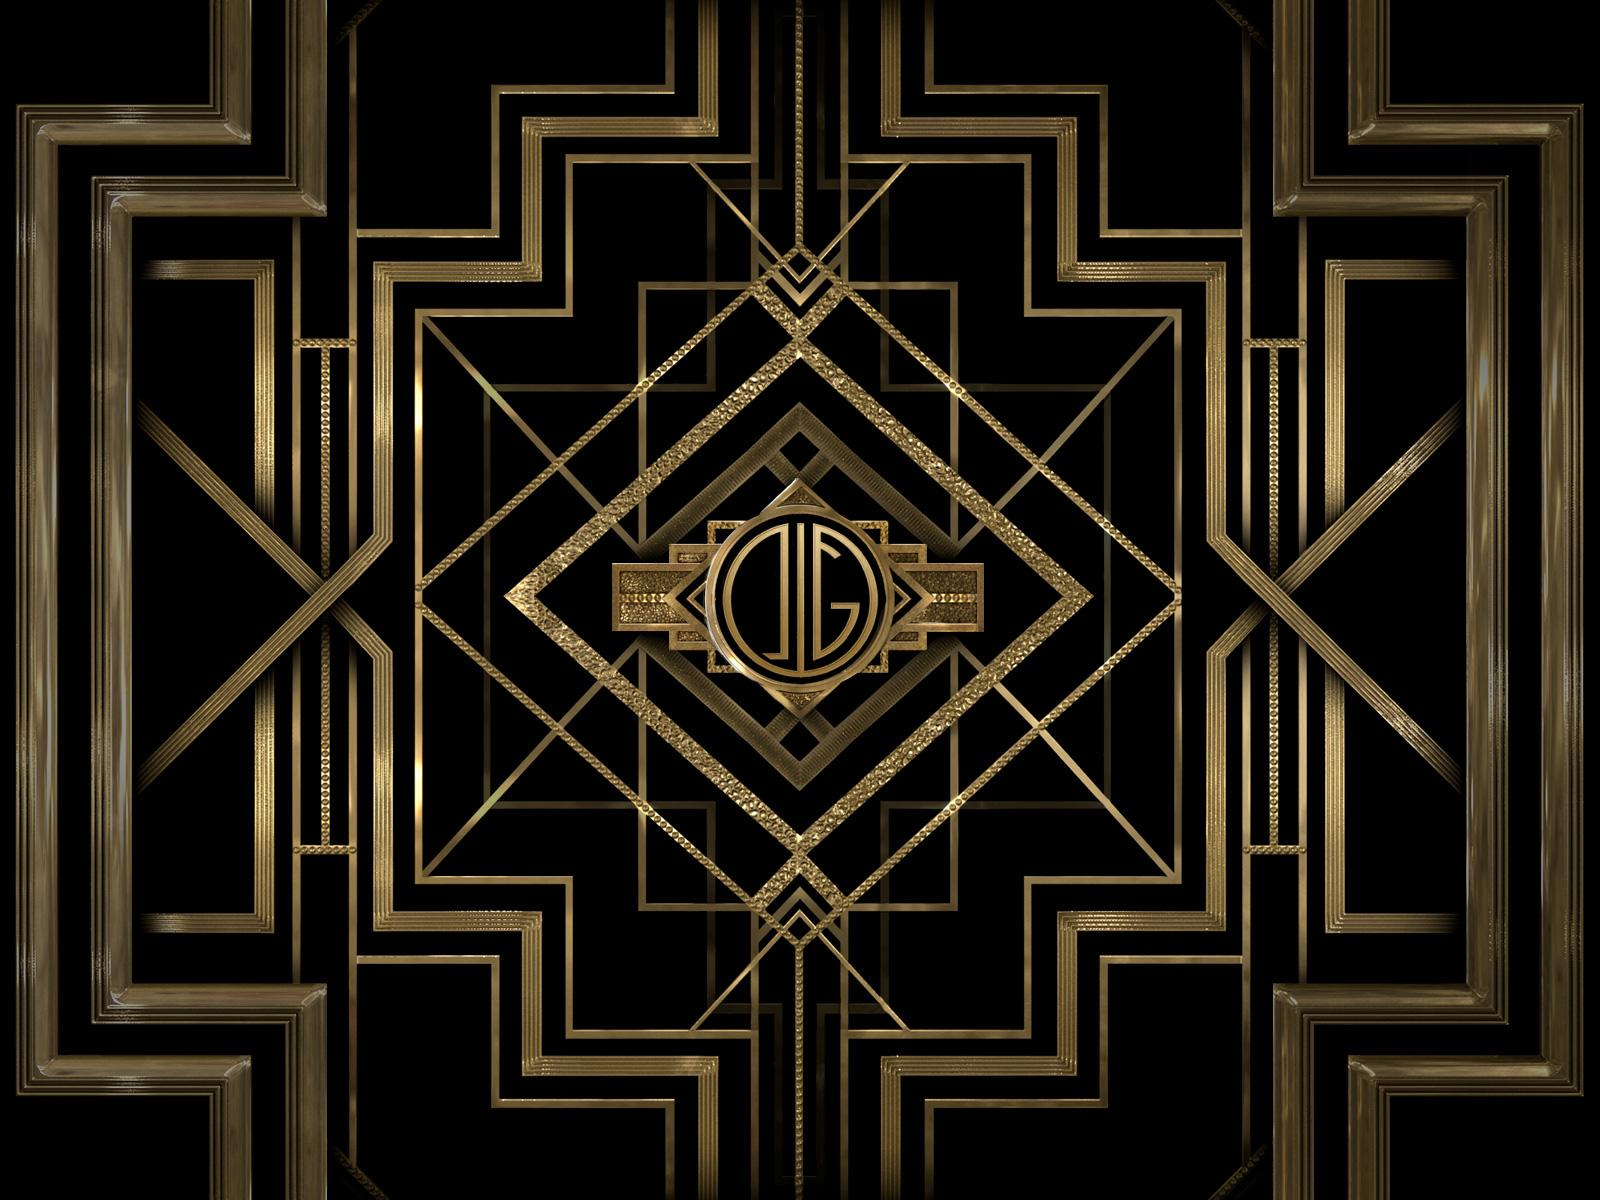 the great gatsby l g 1600x1200 1366420506639